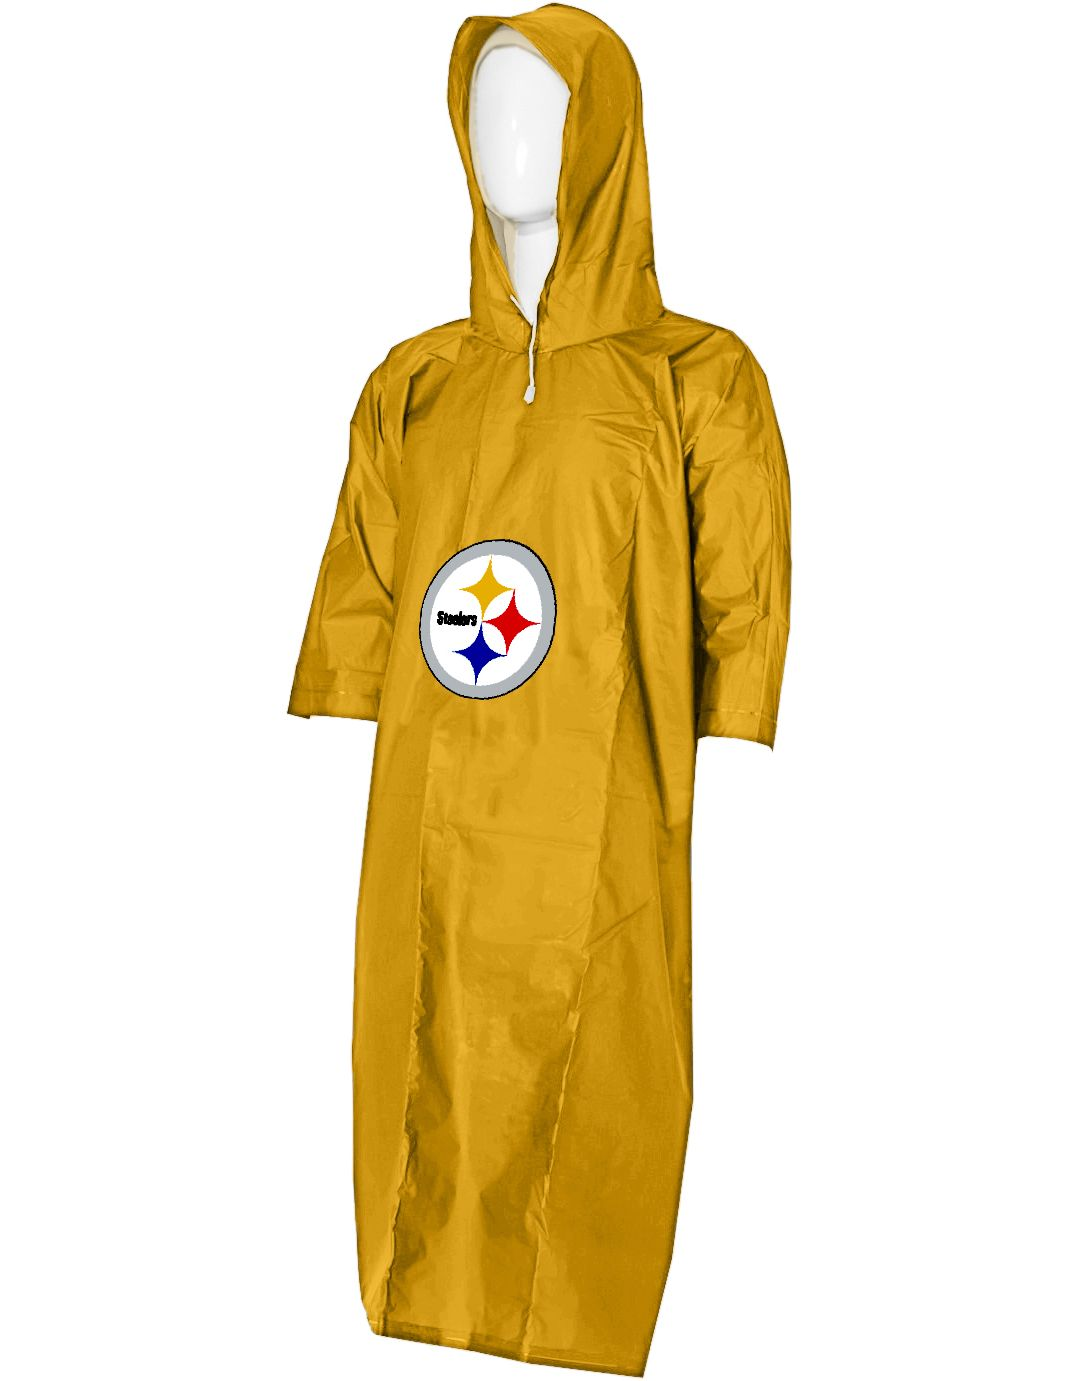 online store b1dfc b8a84 Northwest Pittsburgh Steelers Deluxe Poncho